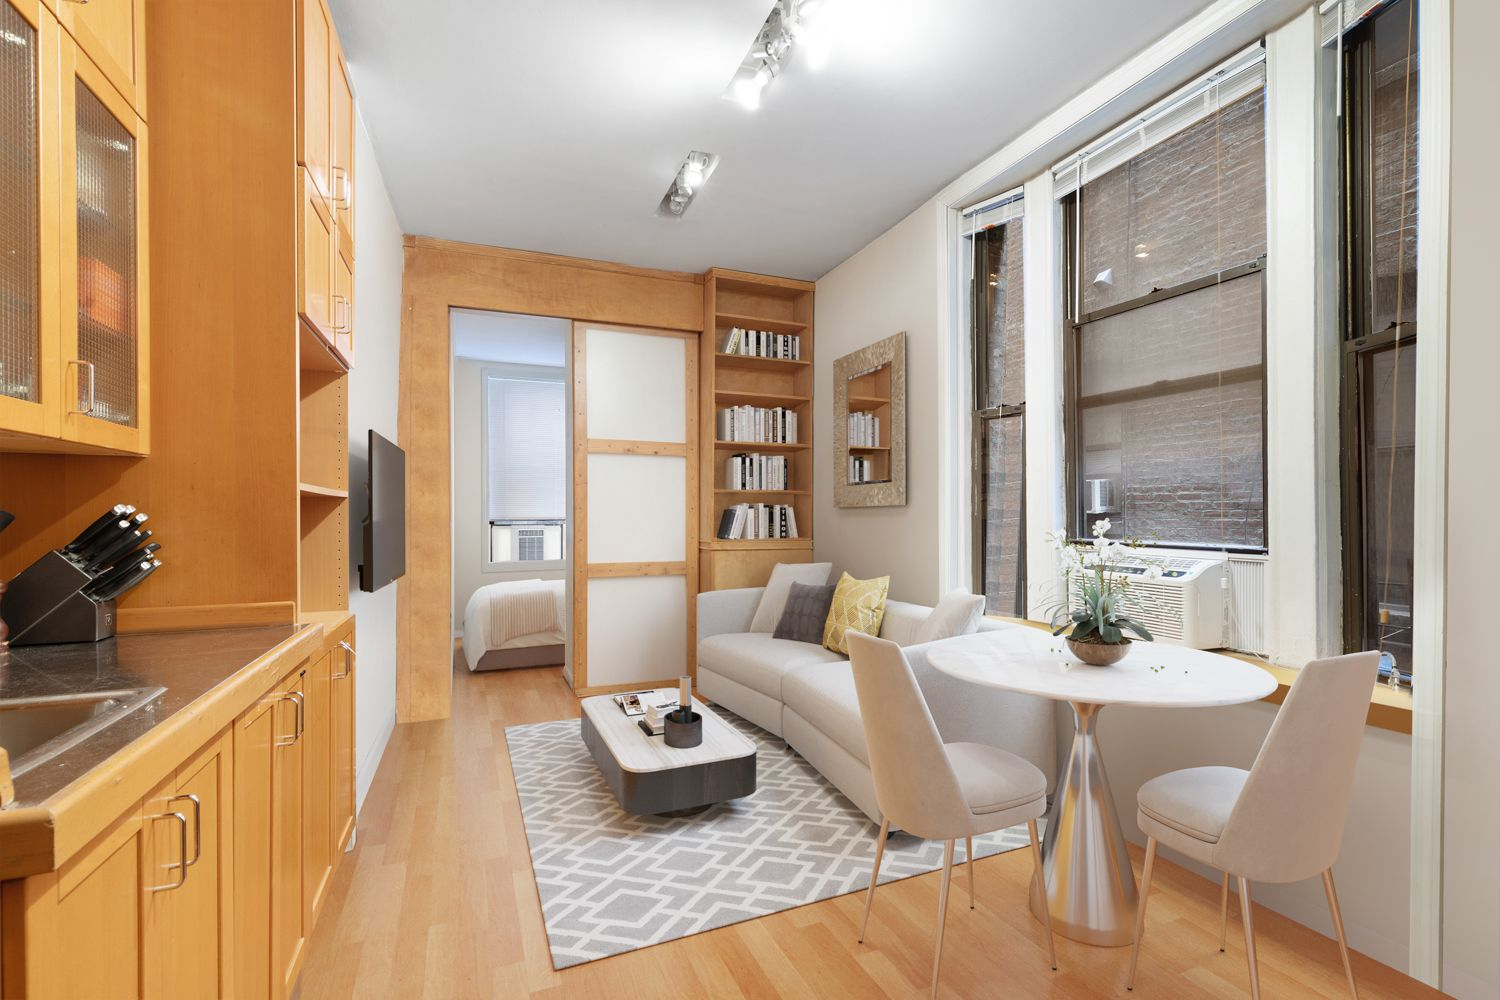 NYC Apartments for $500K: What You Can Buy Right Now